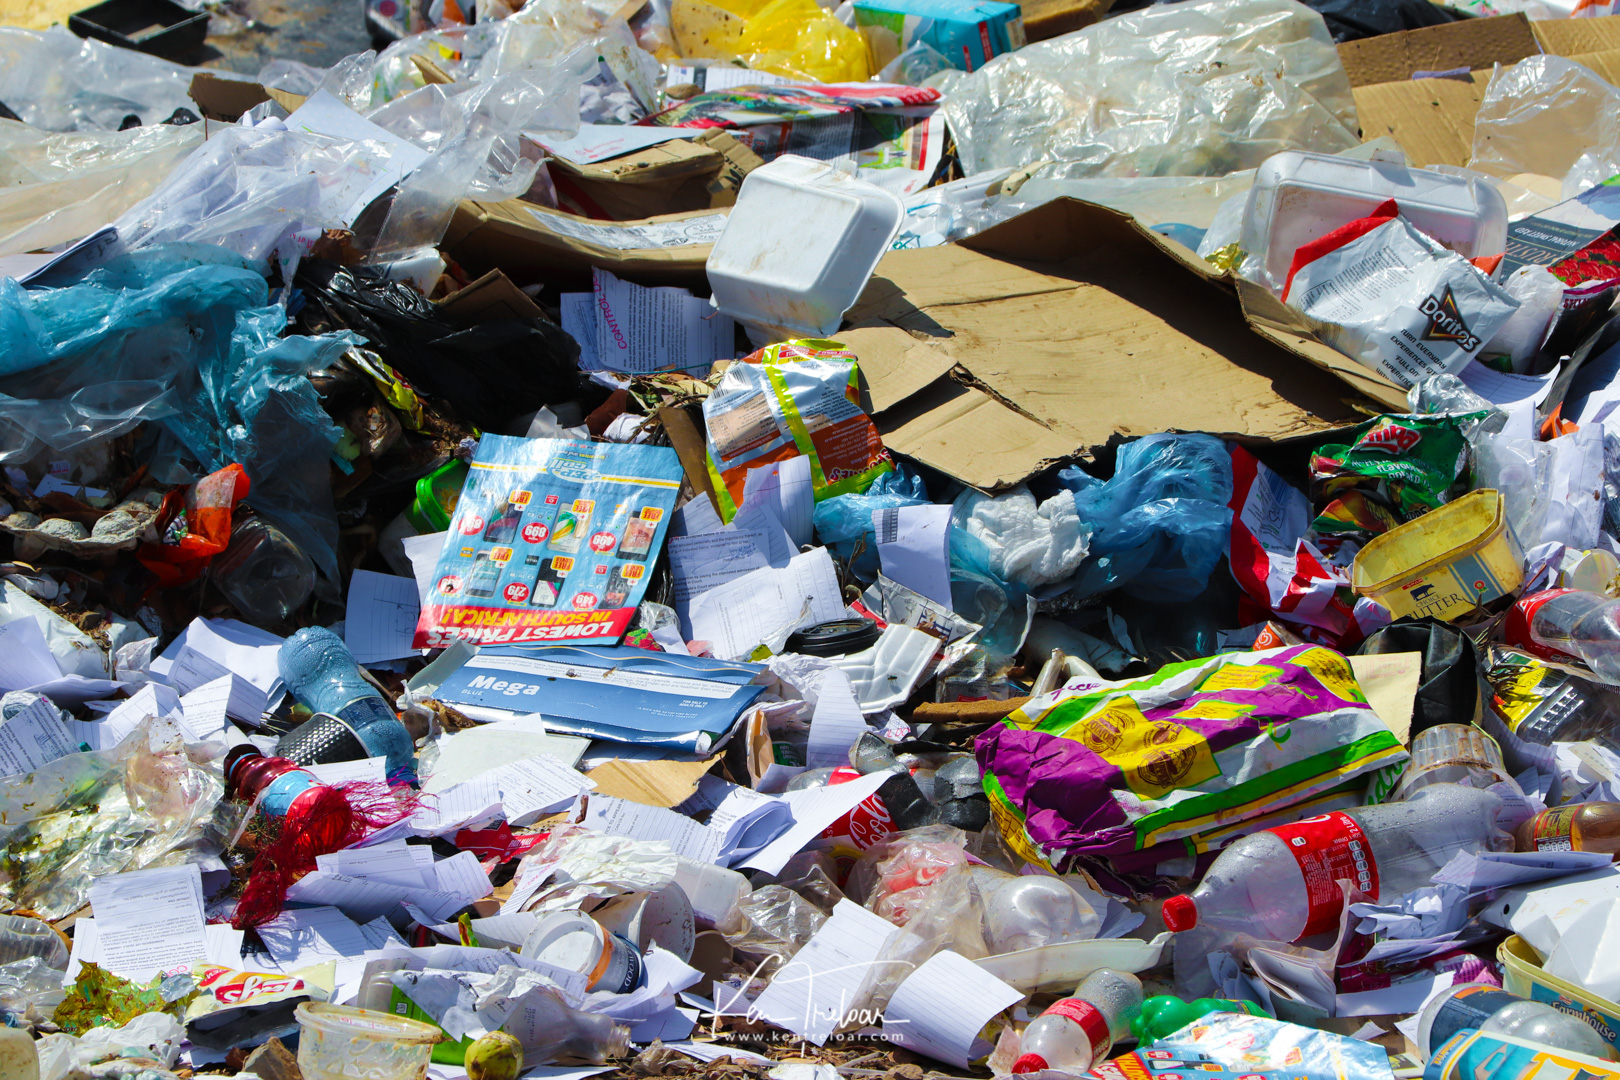 Ugly Plastic - Landfill South Africa Trash-4.jpg